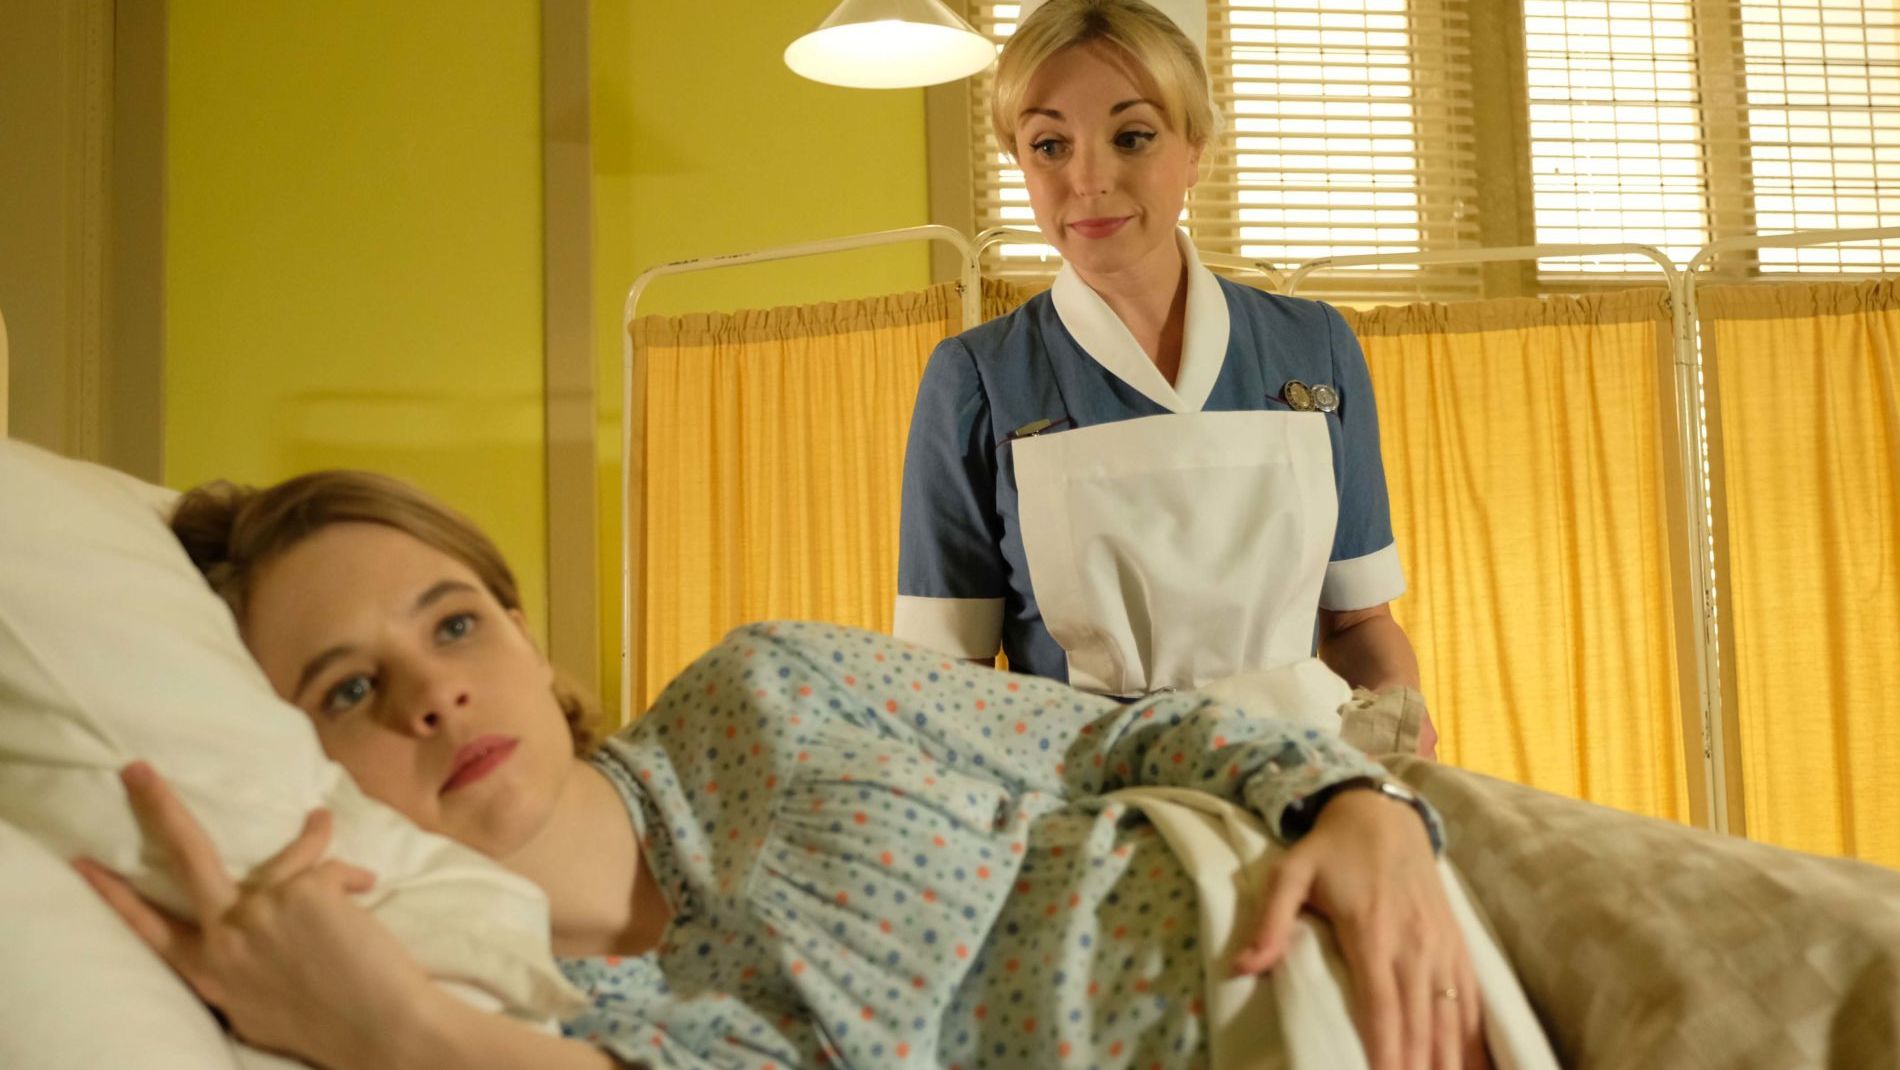 Nurse Trixie Franklin (Helen George) helps the pregnant Mrs. Lombardi (Jessica Clark).